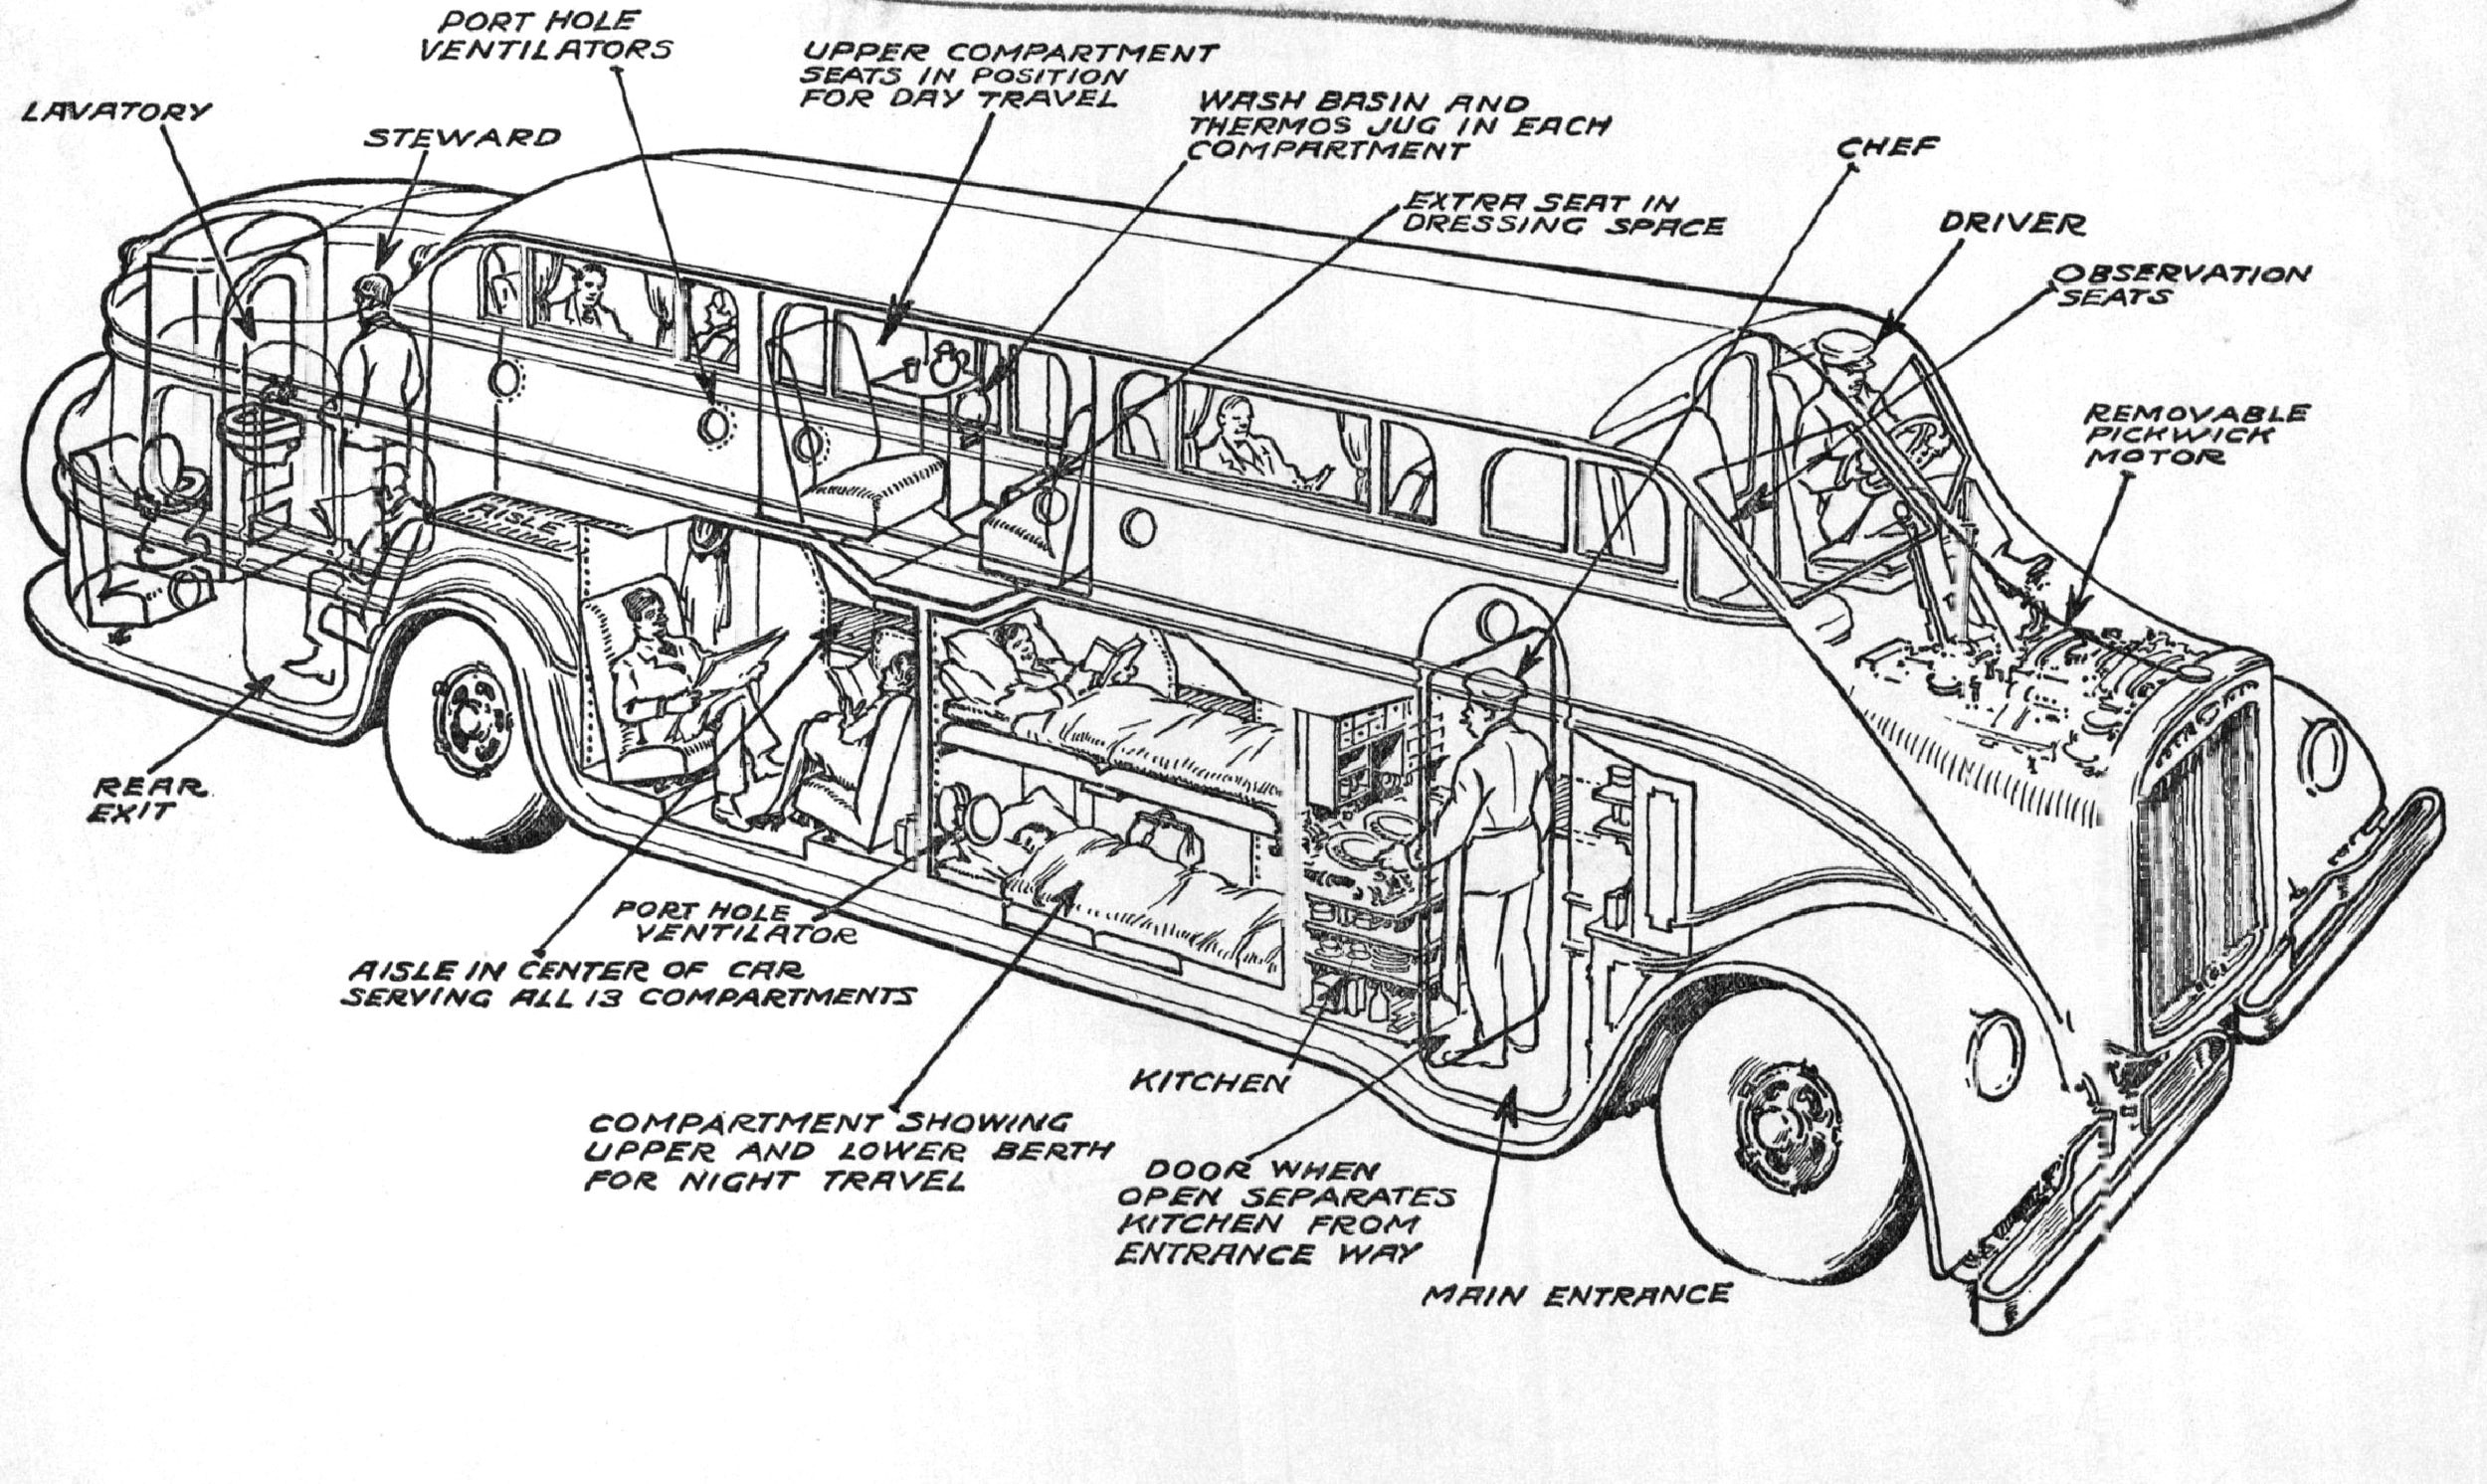 Bus Engine Diagram Bus Engine Diagram Indexnewspaper Of Bus Engine Diagram